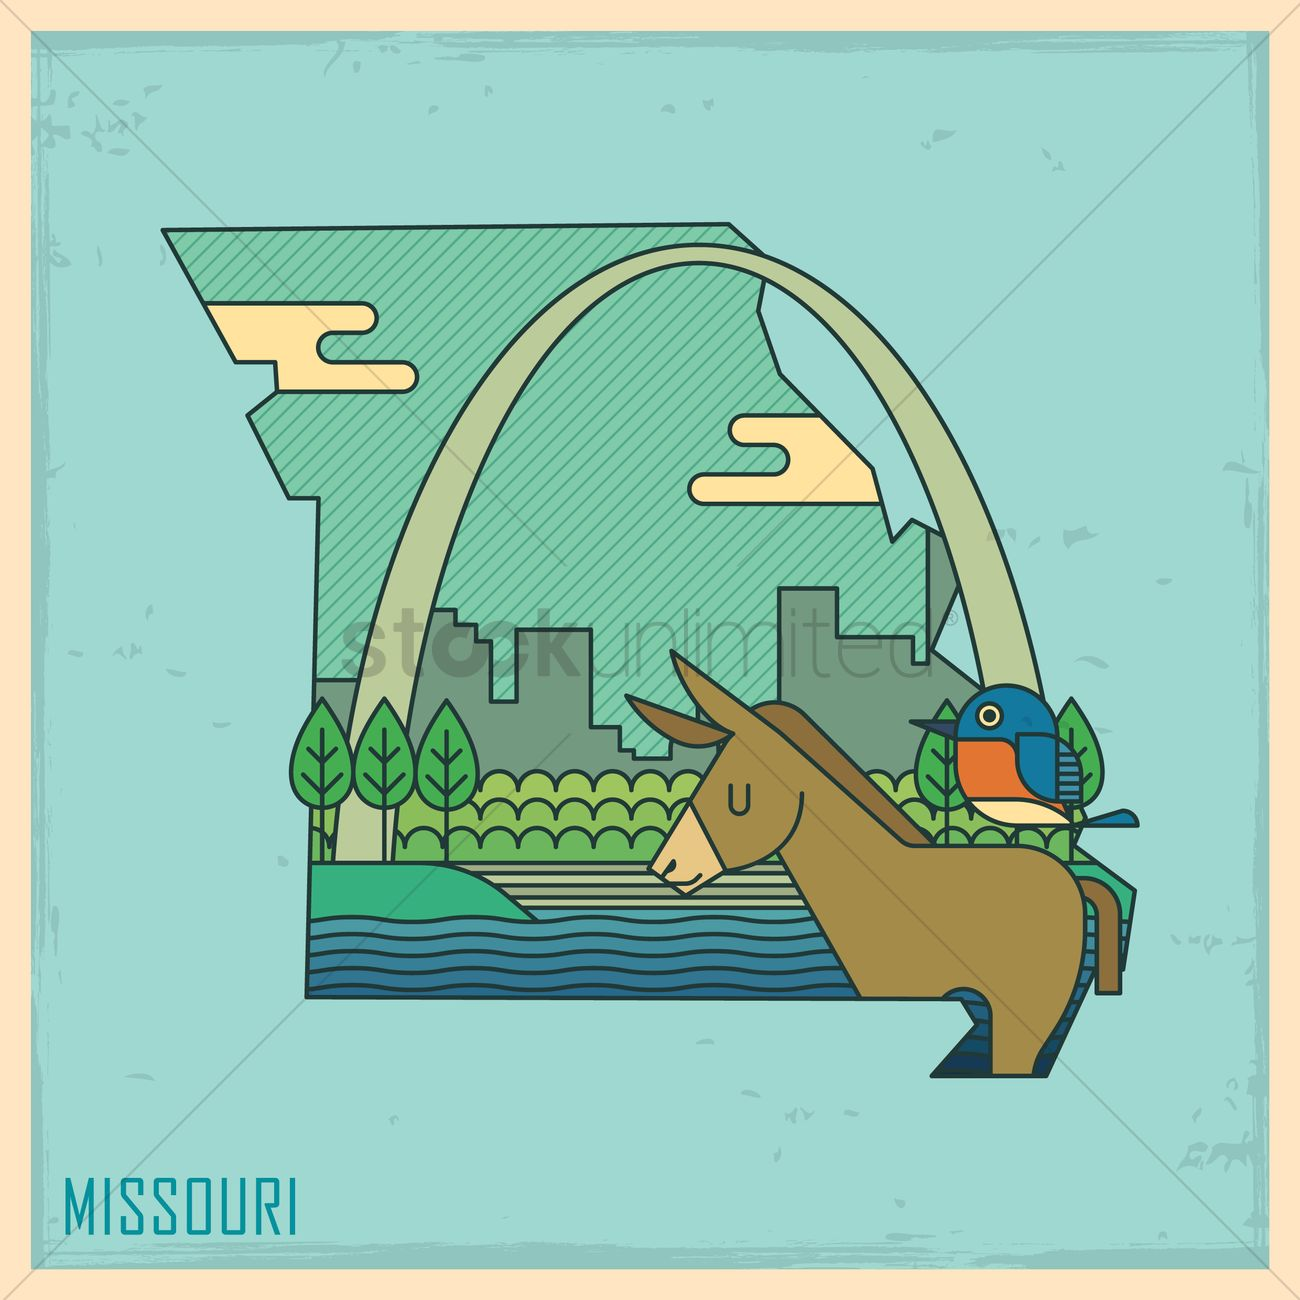 Missouri state map Vector Image - 1563473 | StockUnlimited